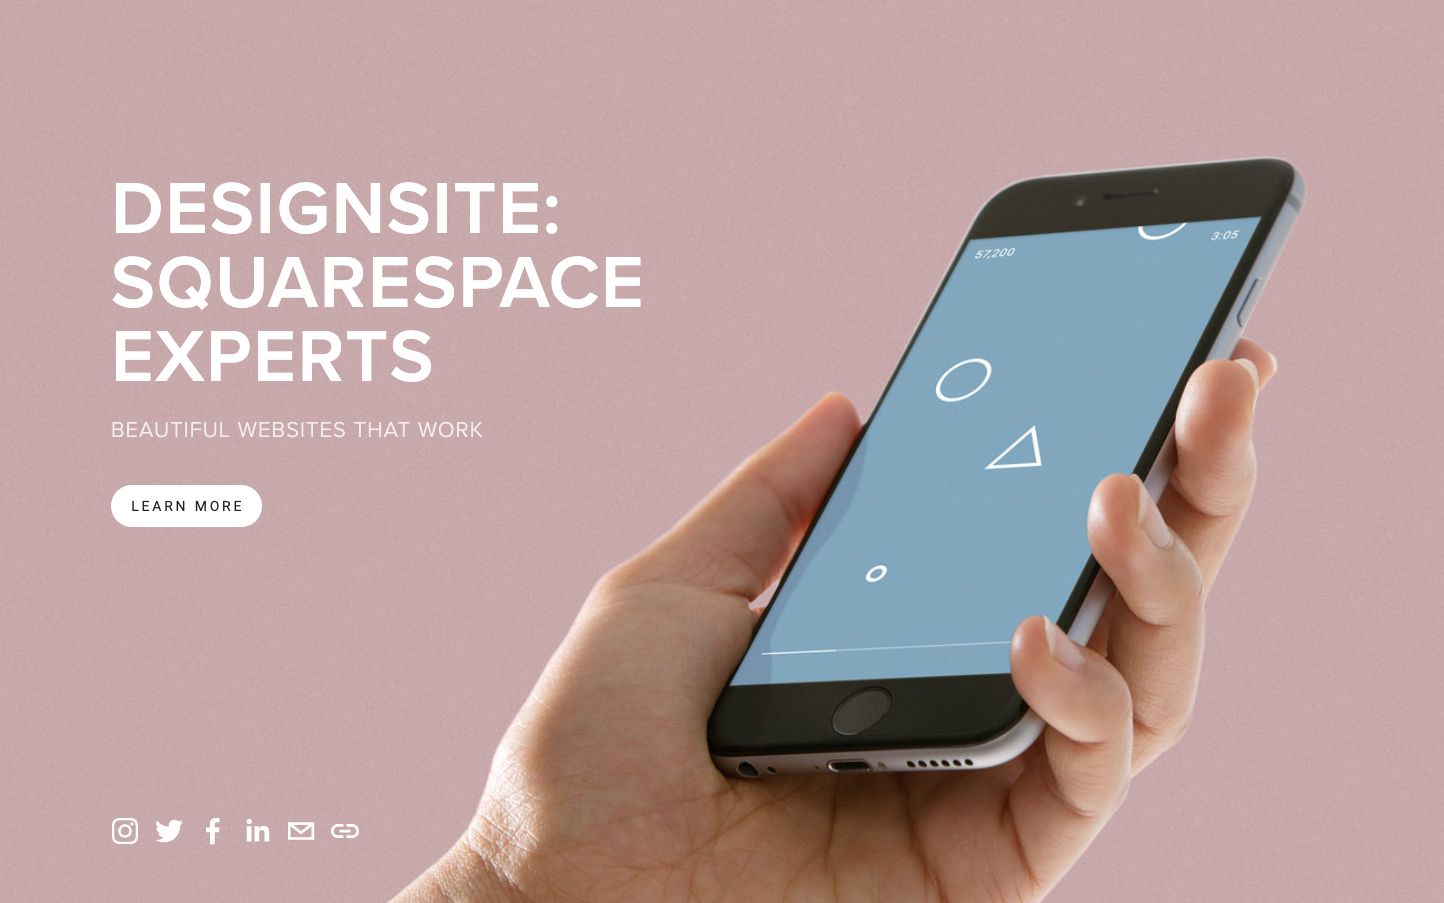 Why We Recommend Squarespace for Website Design